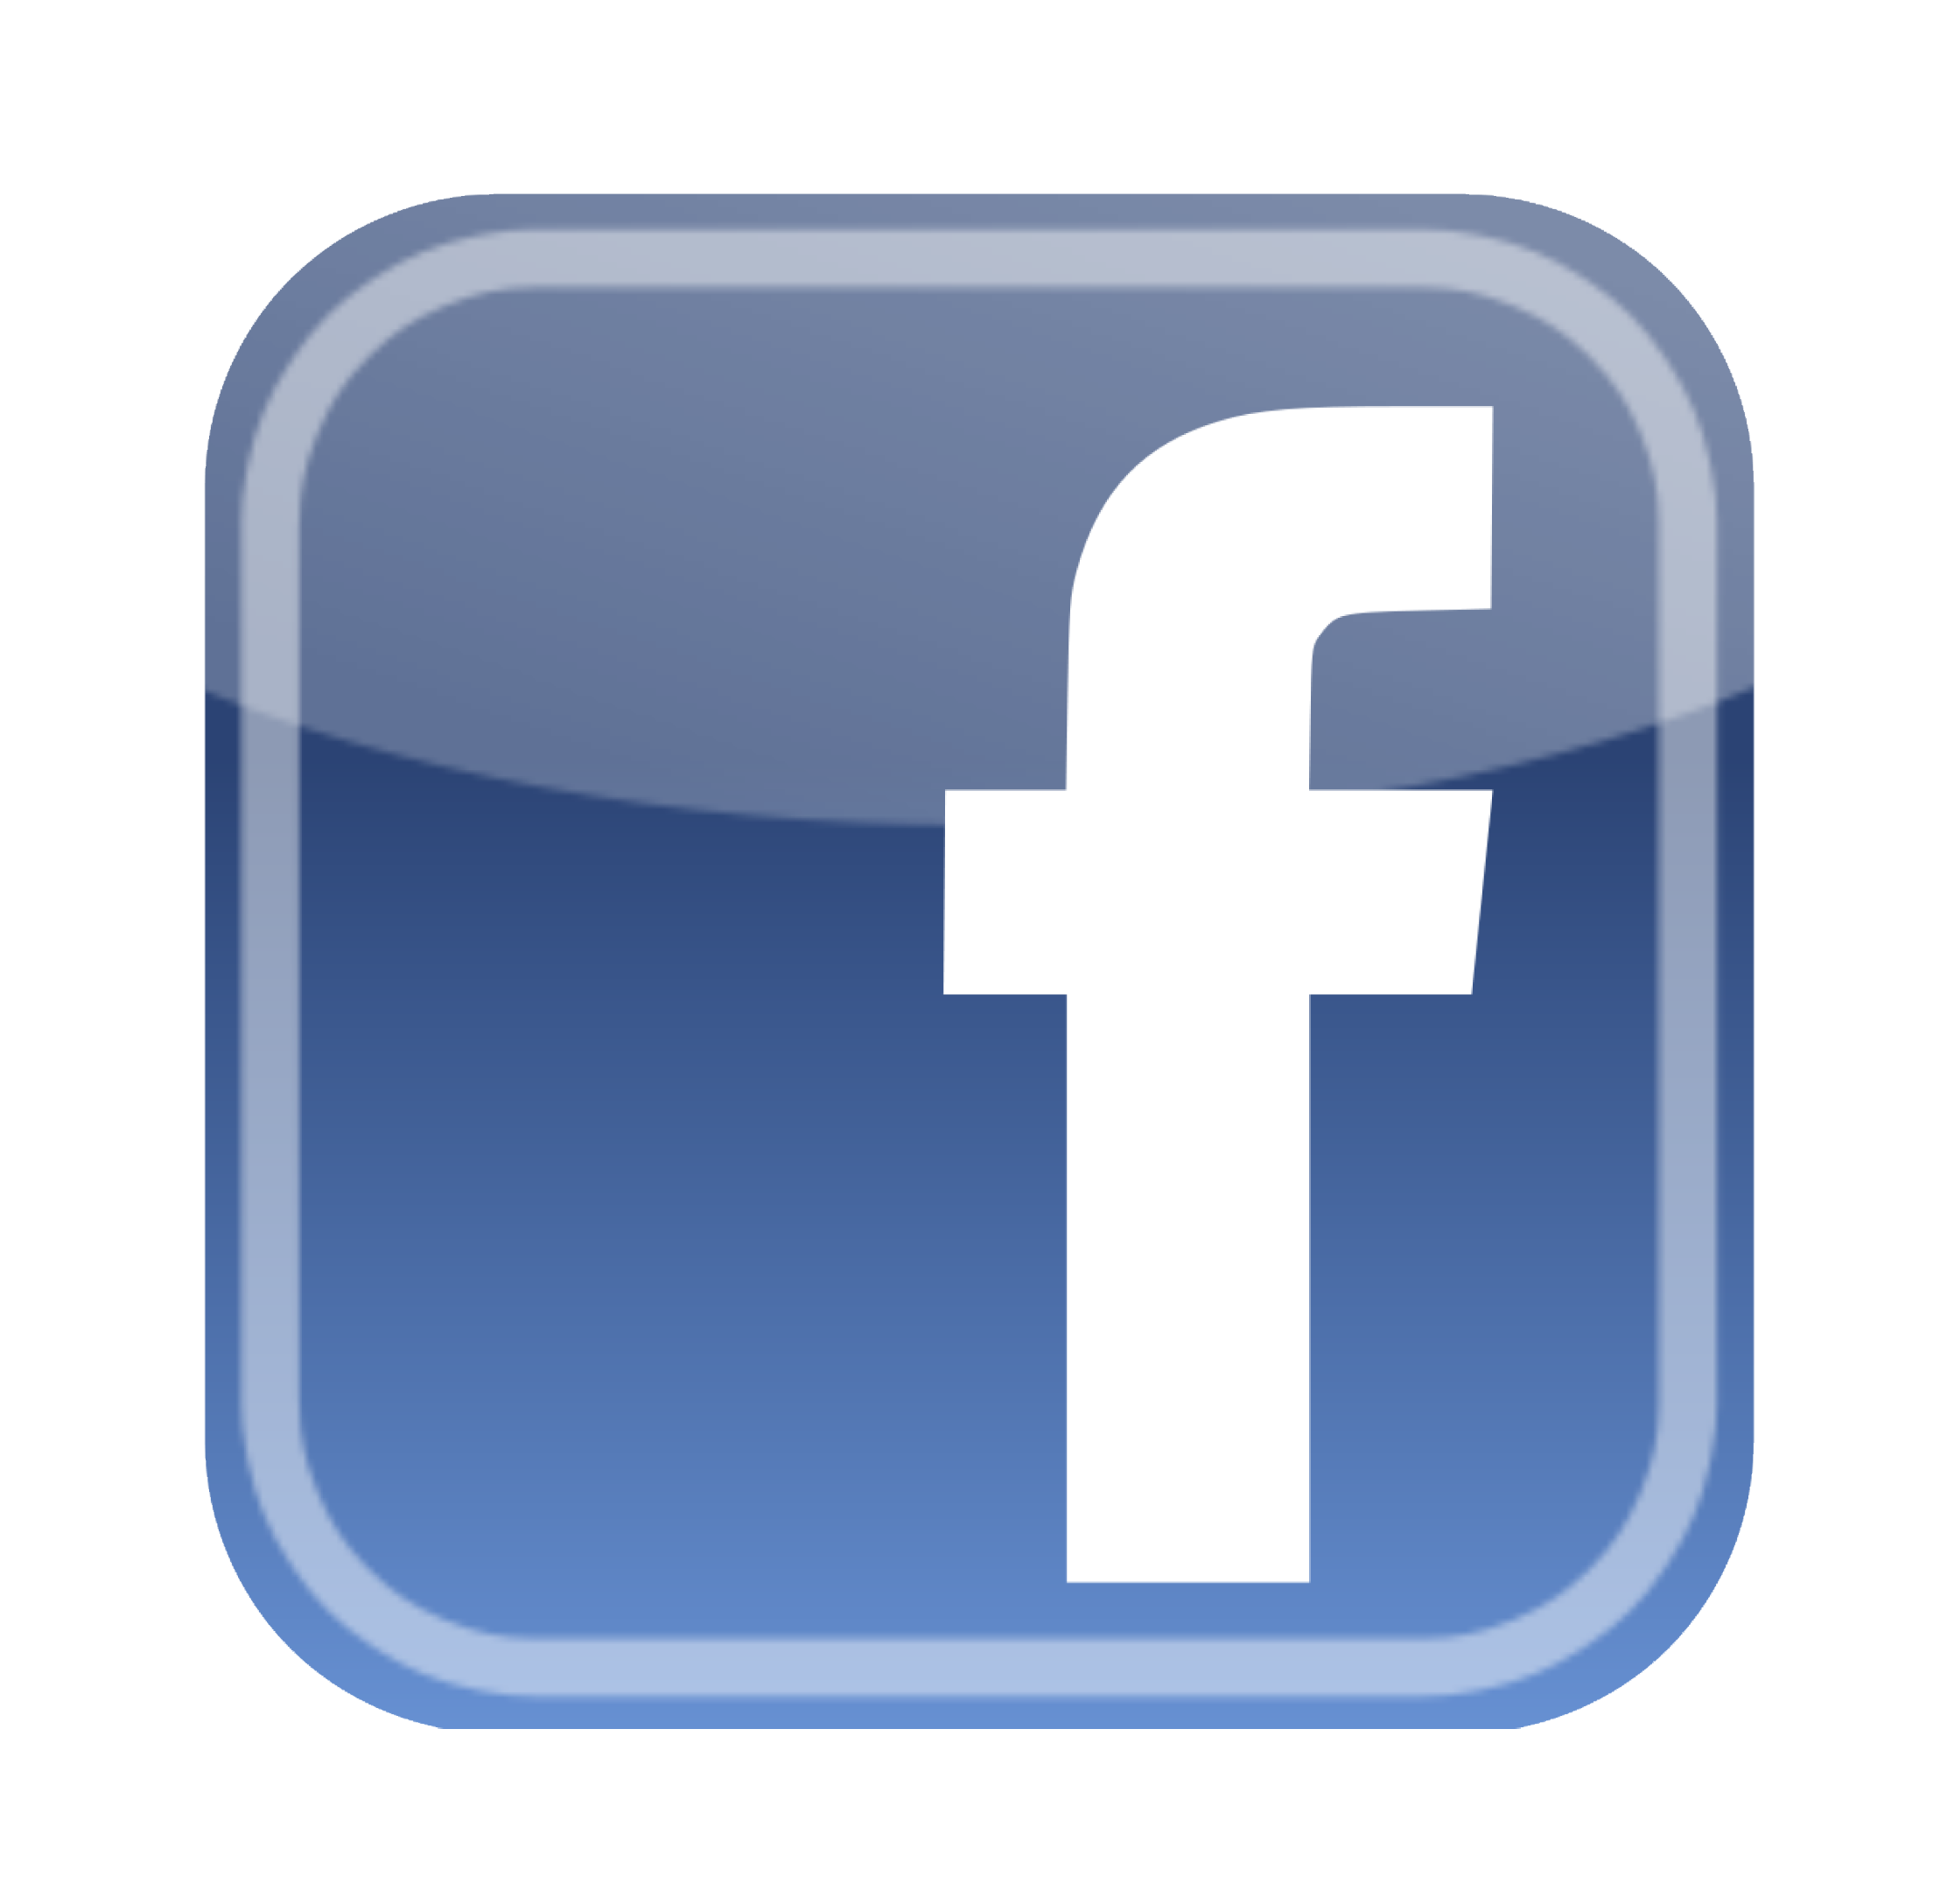 Like Icons Button Computer Messenger Logo Facebook PNG Image